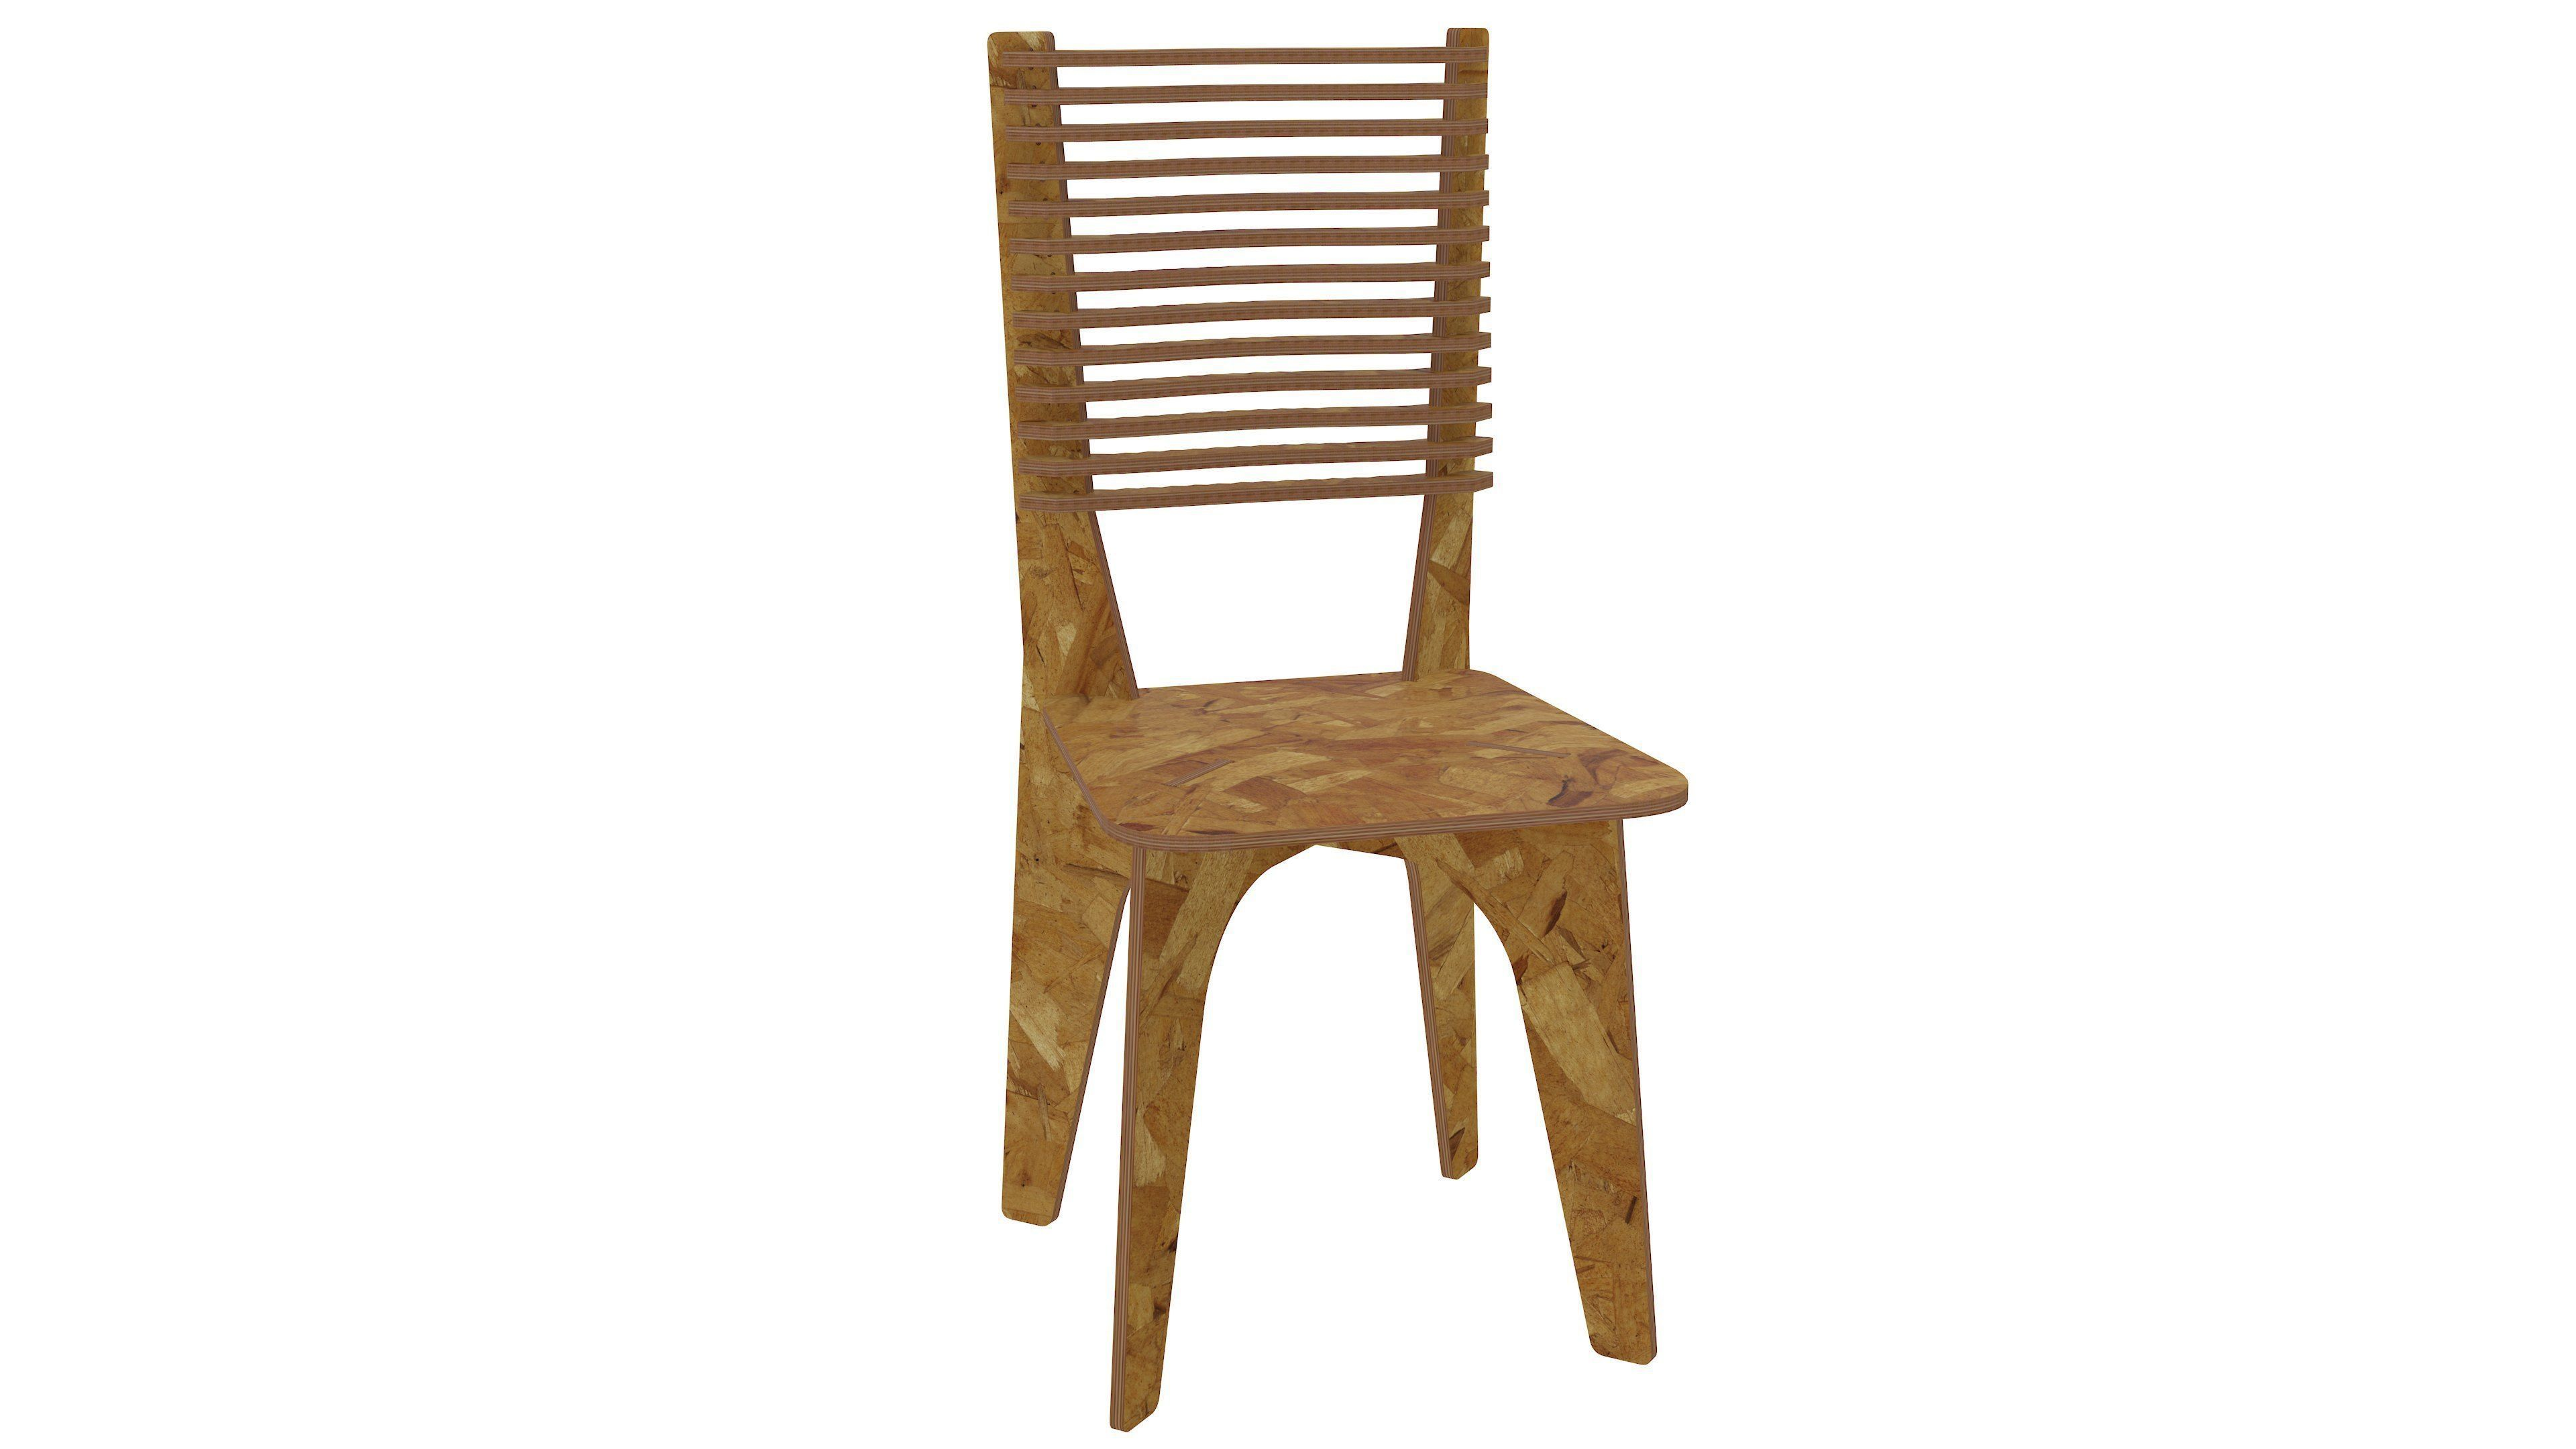 dinner chair for CNC router or laser cut | 3D Print Model